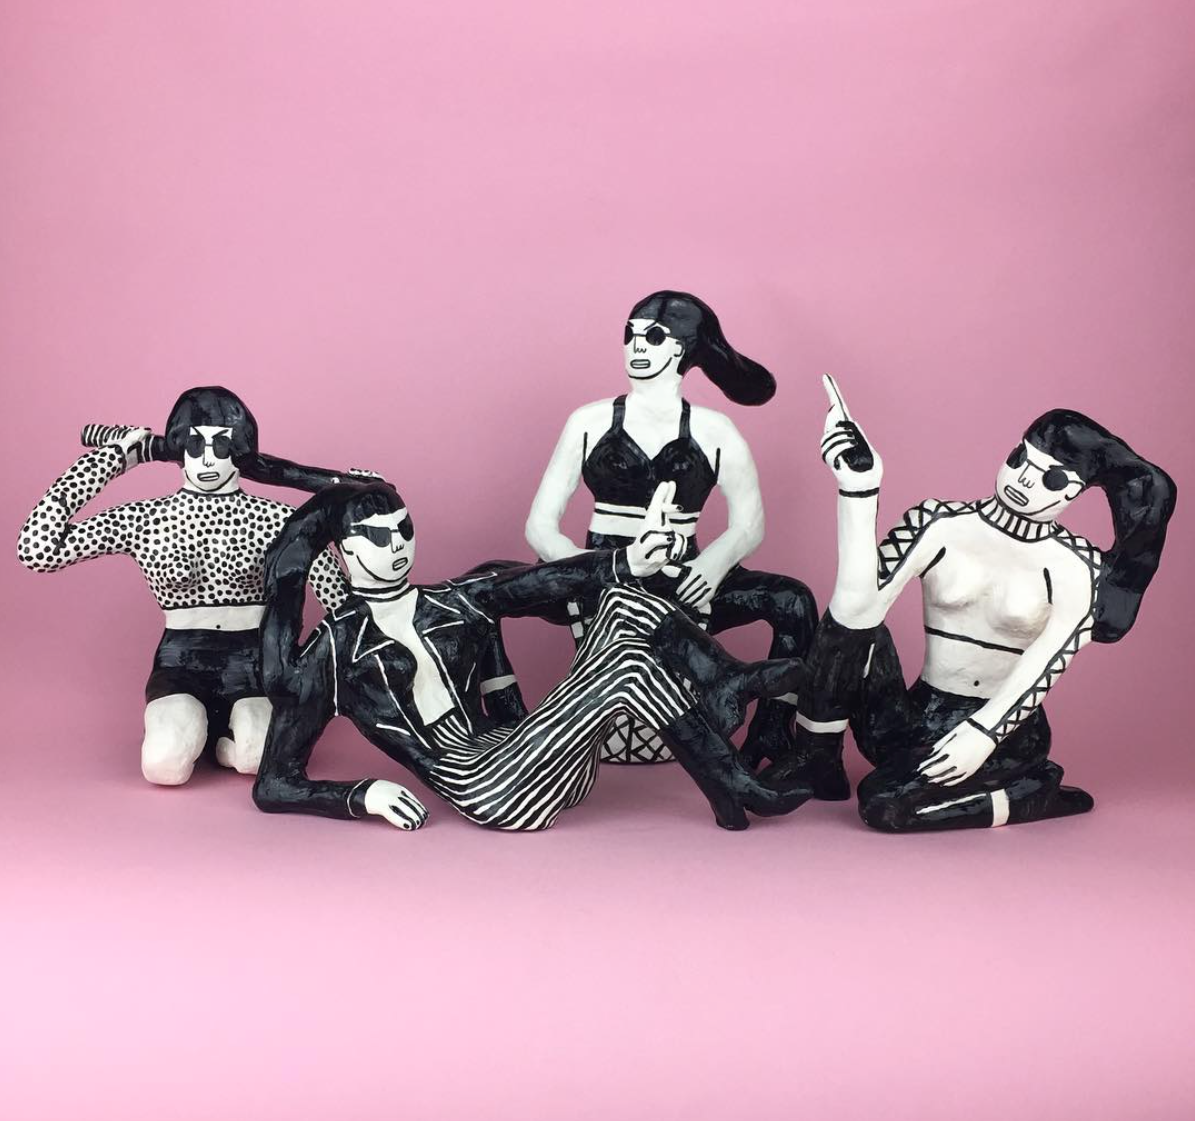 CRACKED - VICE The Creator's Project;6 Female Artists Demonstrate Pottery's Subversive PotentialPress Release